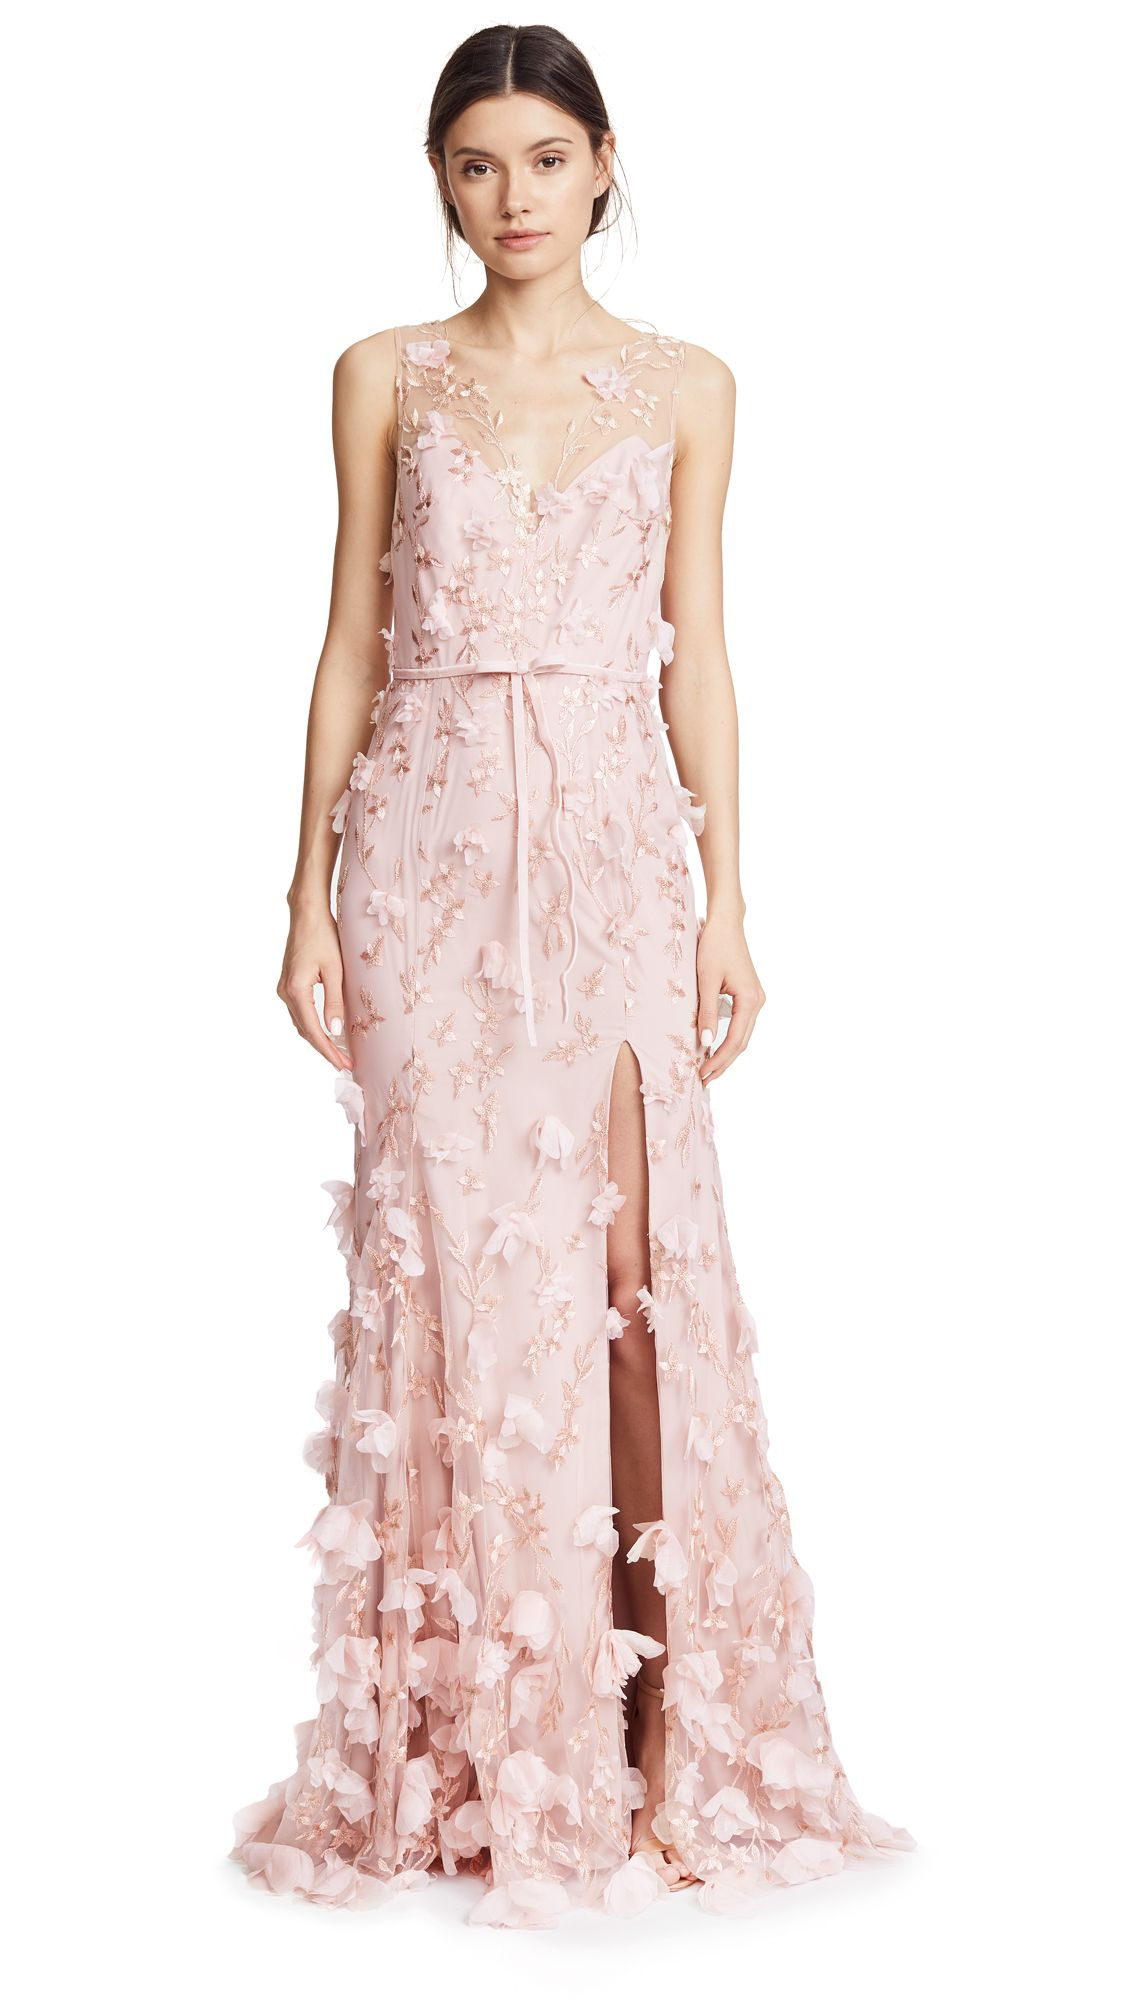 63e945abc5 MARCHESA NOTTE EMBROIDERED GOWN WITH 3D FLOWERS. #marchesanotte #cloth #